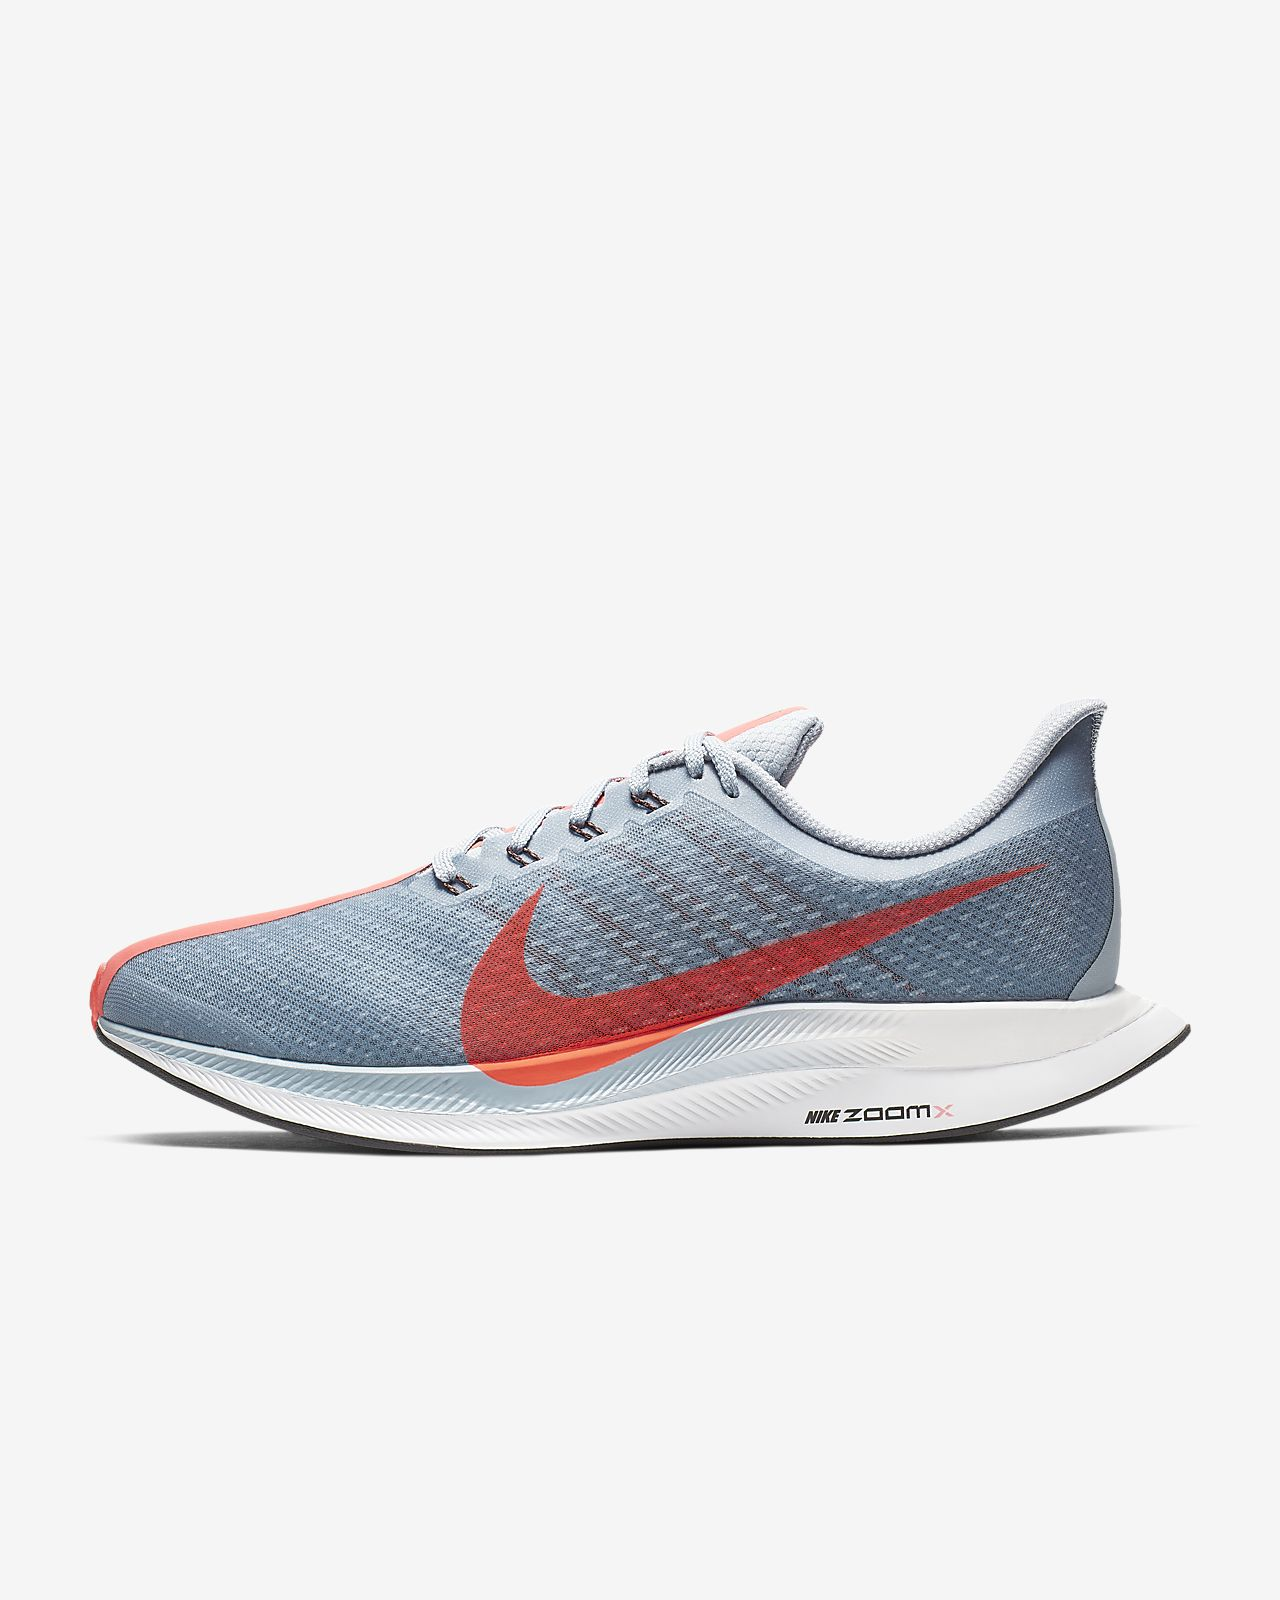 buy cheap 07d9c 63fb1 ... Chaussure de running Nike Zoom Pegasus Turbo pour Homme